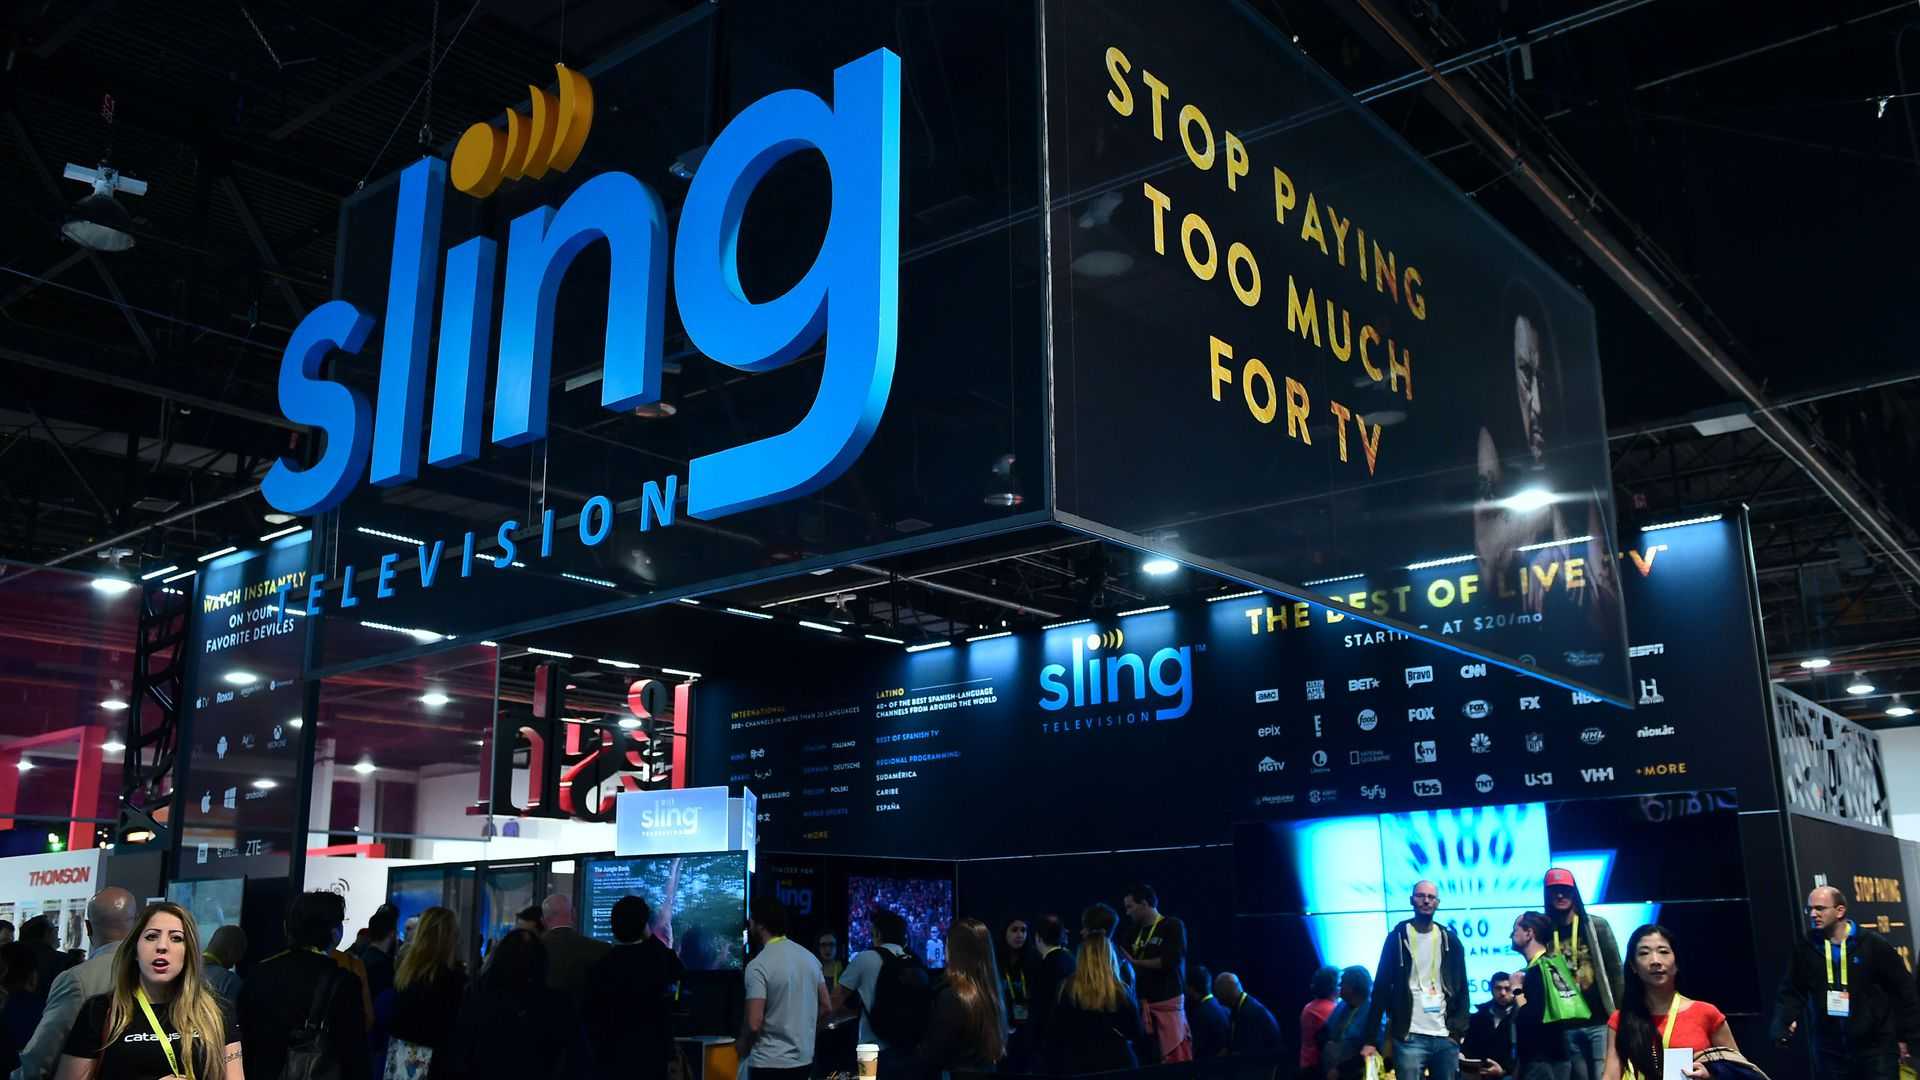 A sign with the Sling Television logo at a conference